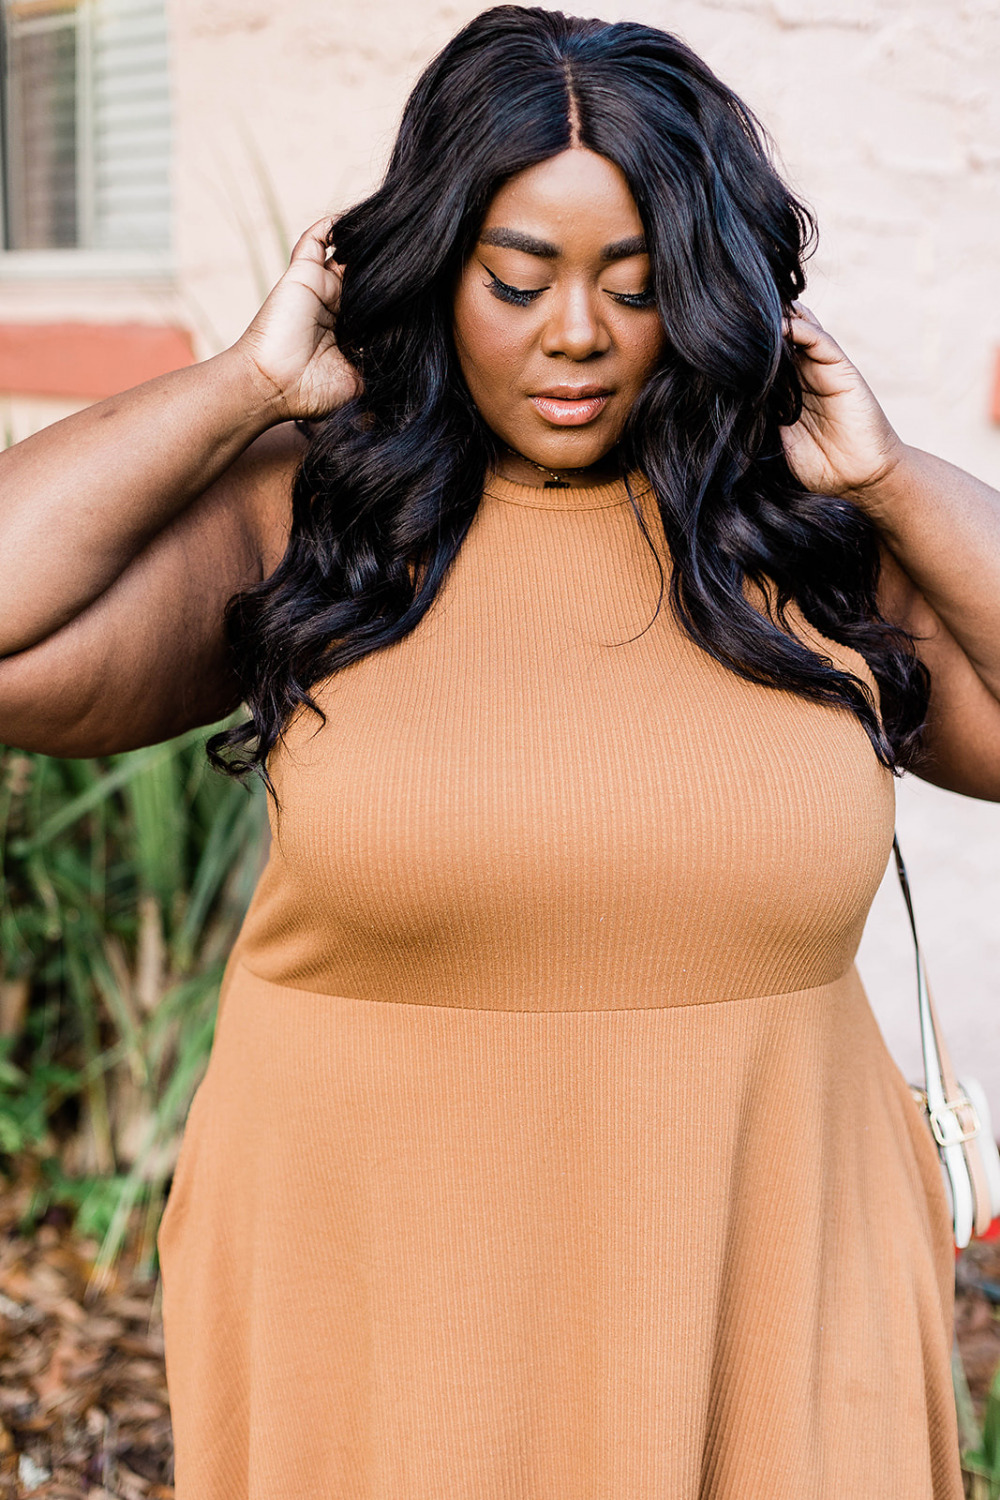 Nordstrom Half-Yearly Sale, BP. Rib Knit Racerback Dress, Plus Size Fashion, Thamarr Musings of a Curvy Lady